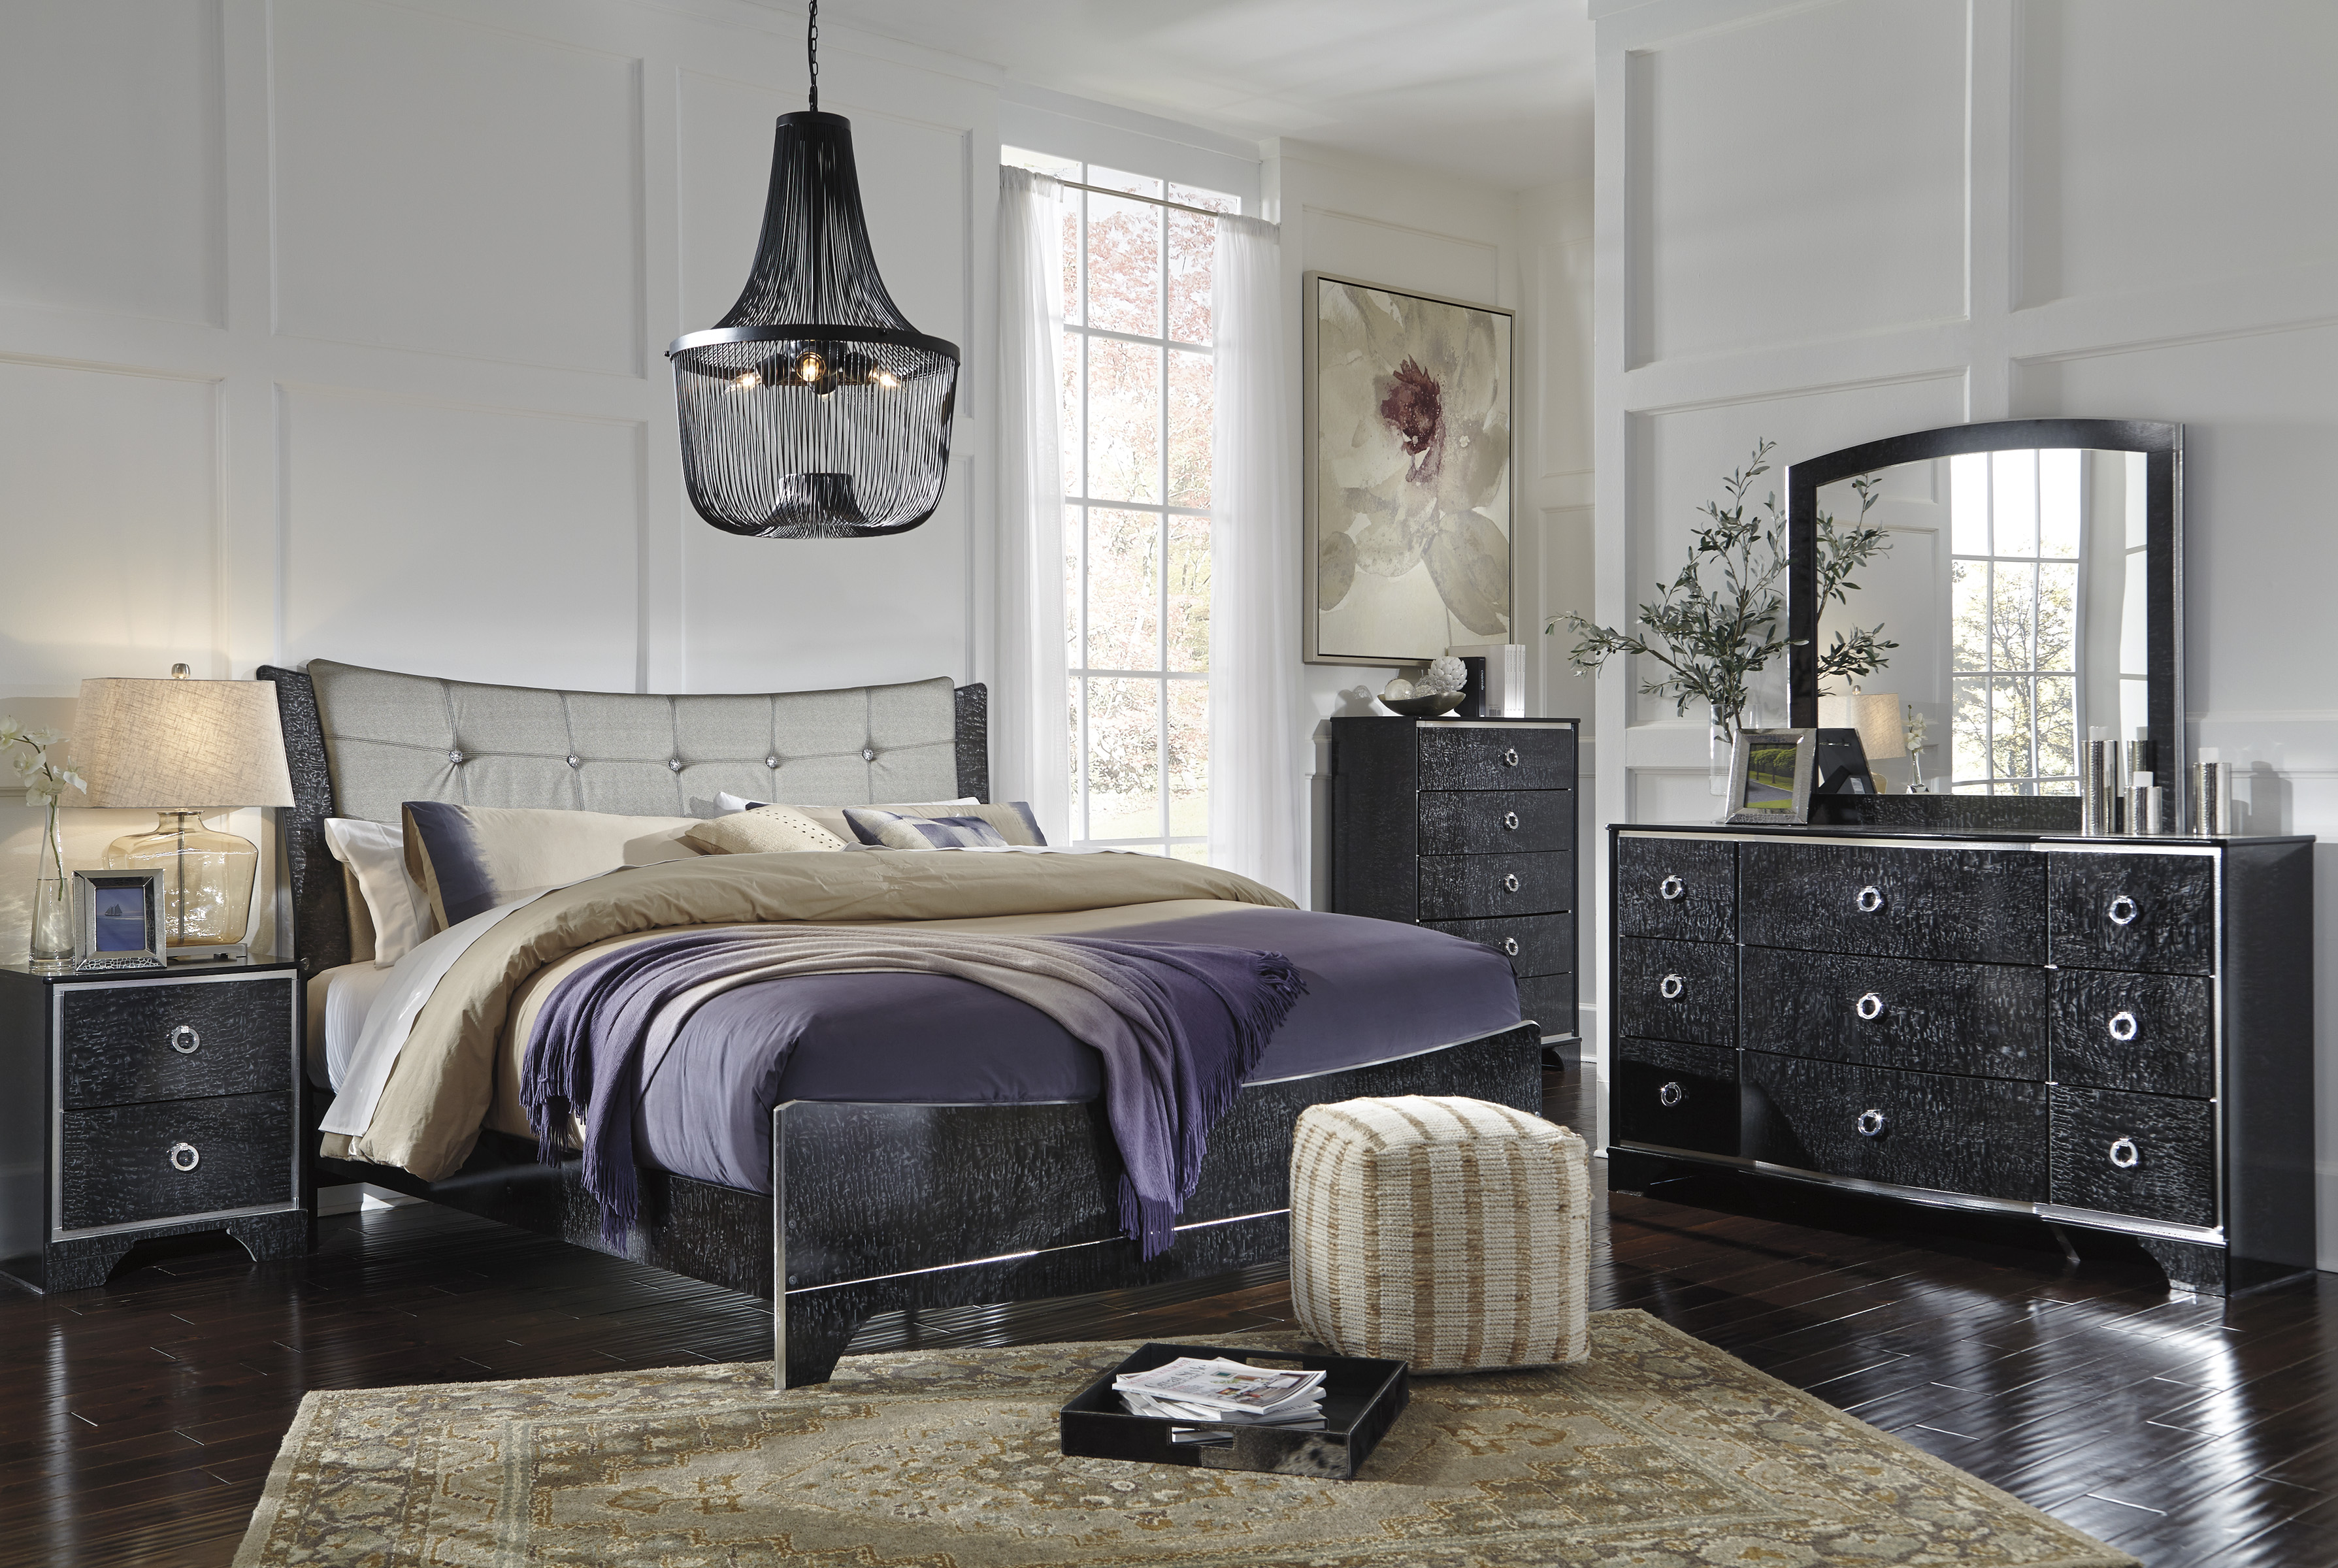 Amrothi King Upholstered Bed, Dresser, Mirror, Chest & Nightstand  / $34.99 A Week